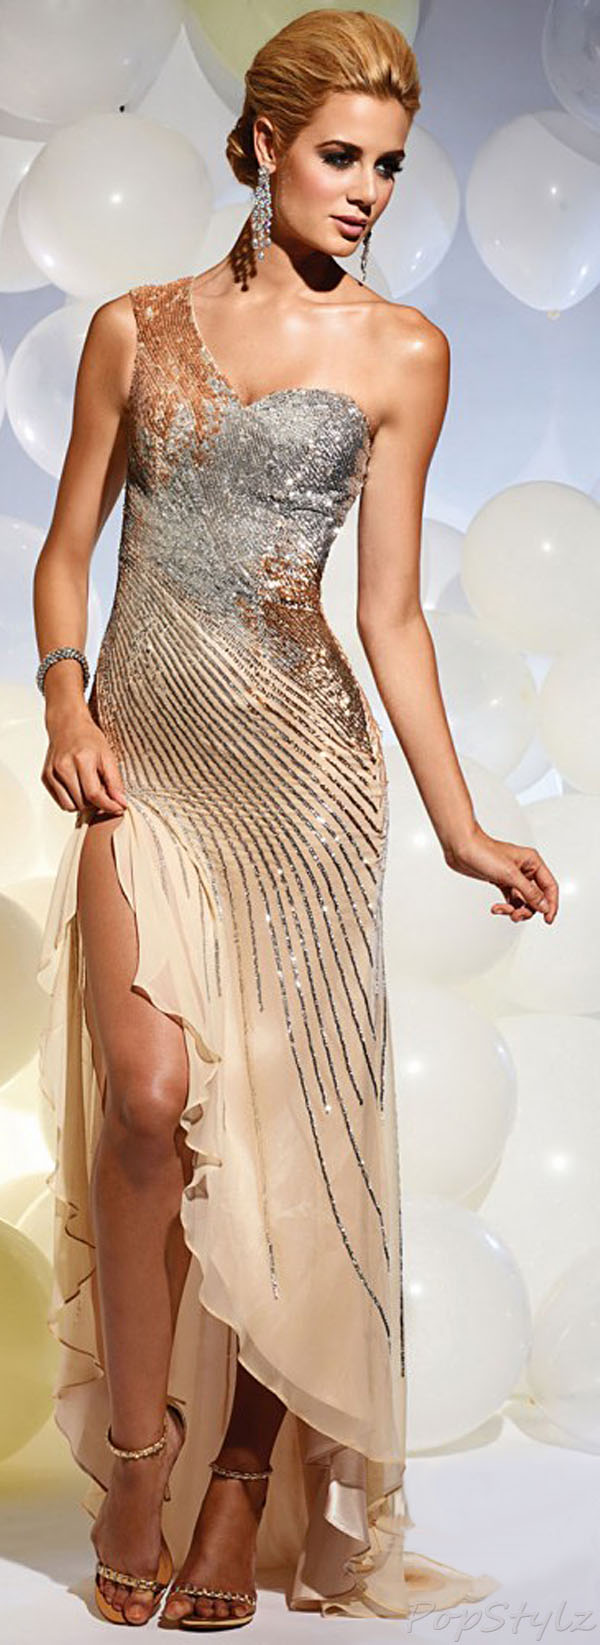 Terani Couture P629 Gold/Silver Dress